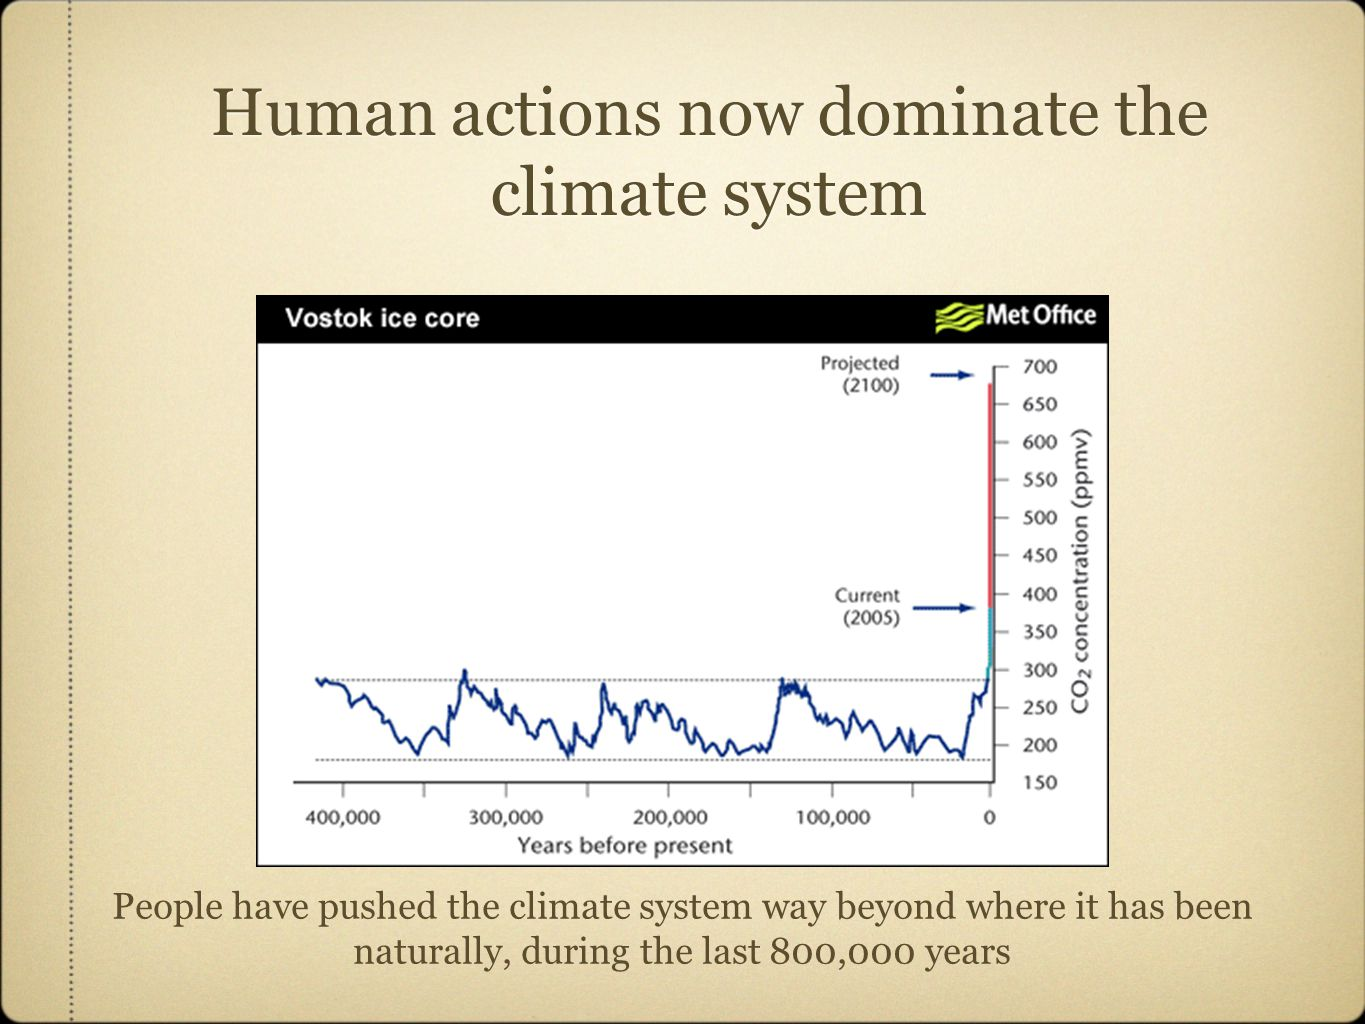 Models without human inputs included cannot explain what is happening Scientists have considered factors like solar activity, volcanoes, etc.